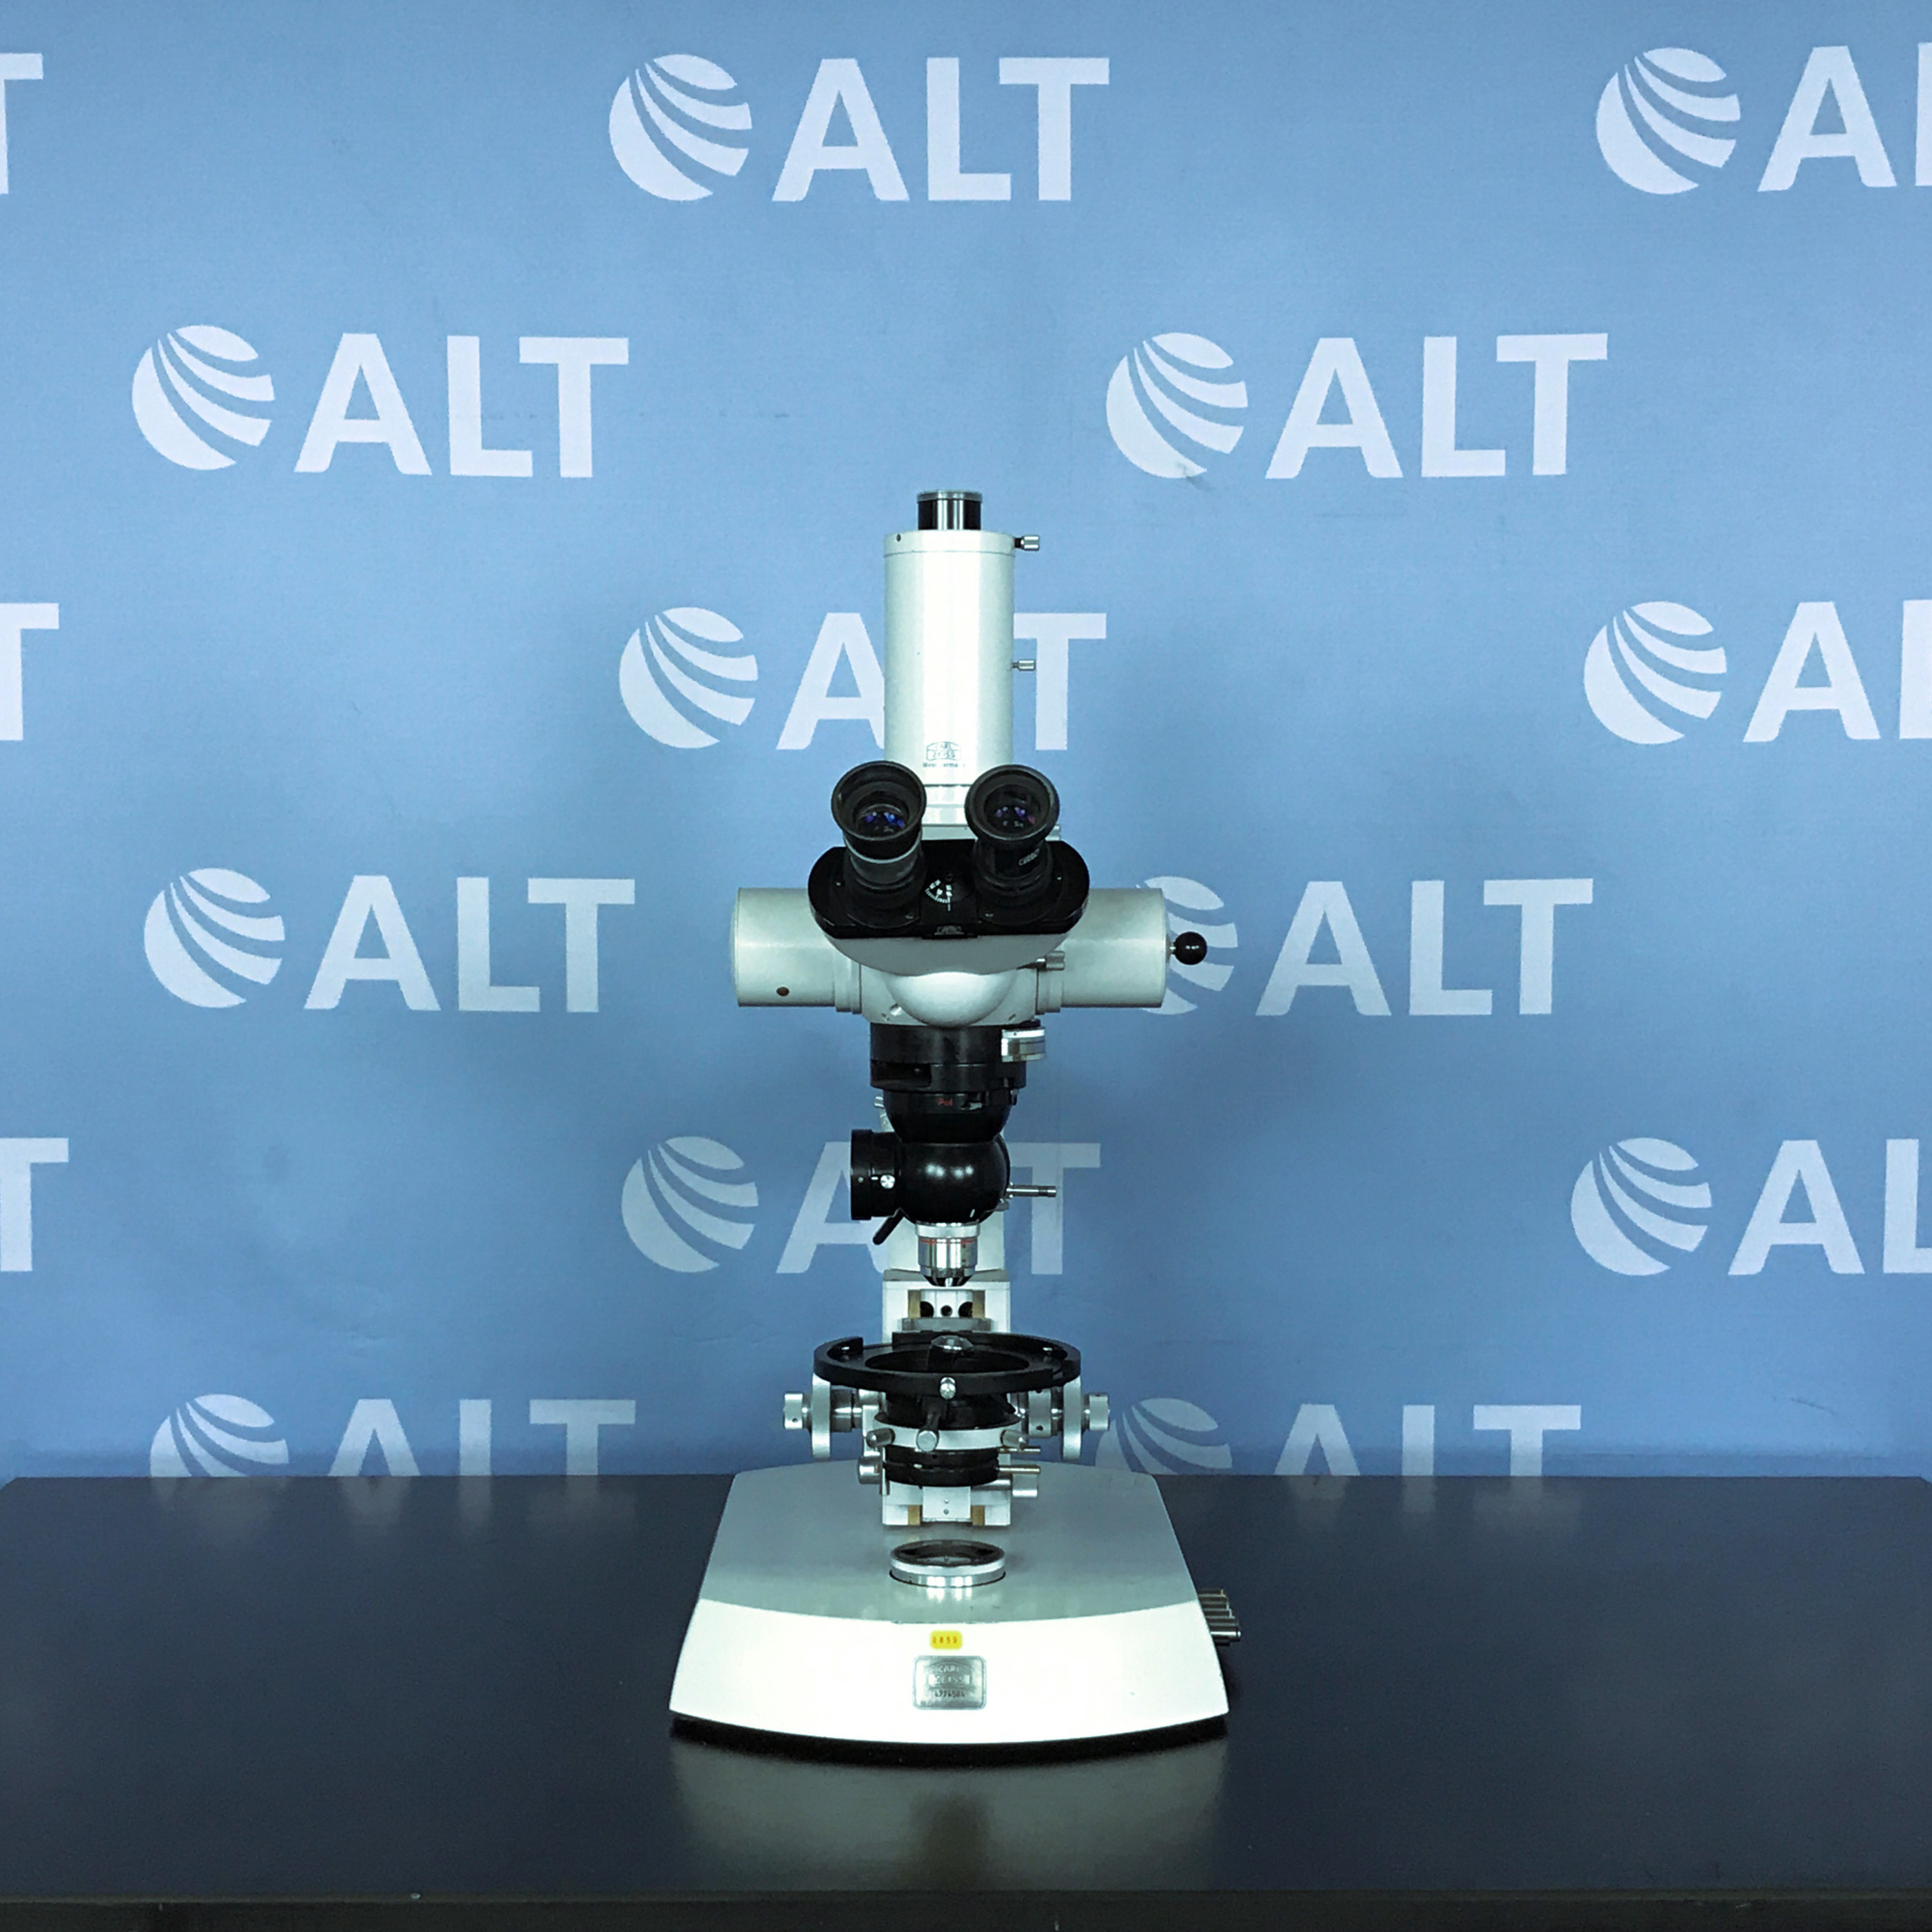 Carl Zeiss 4723665/4774584/68289 Microscope Image